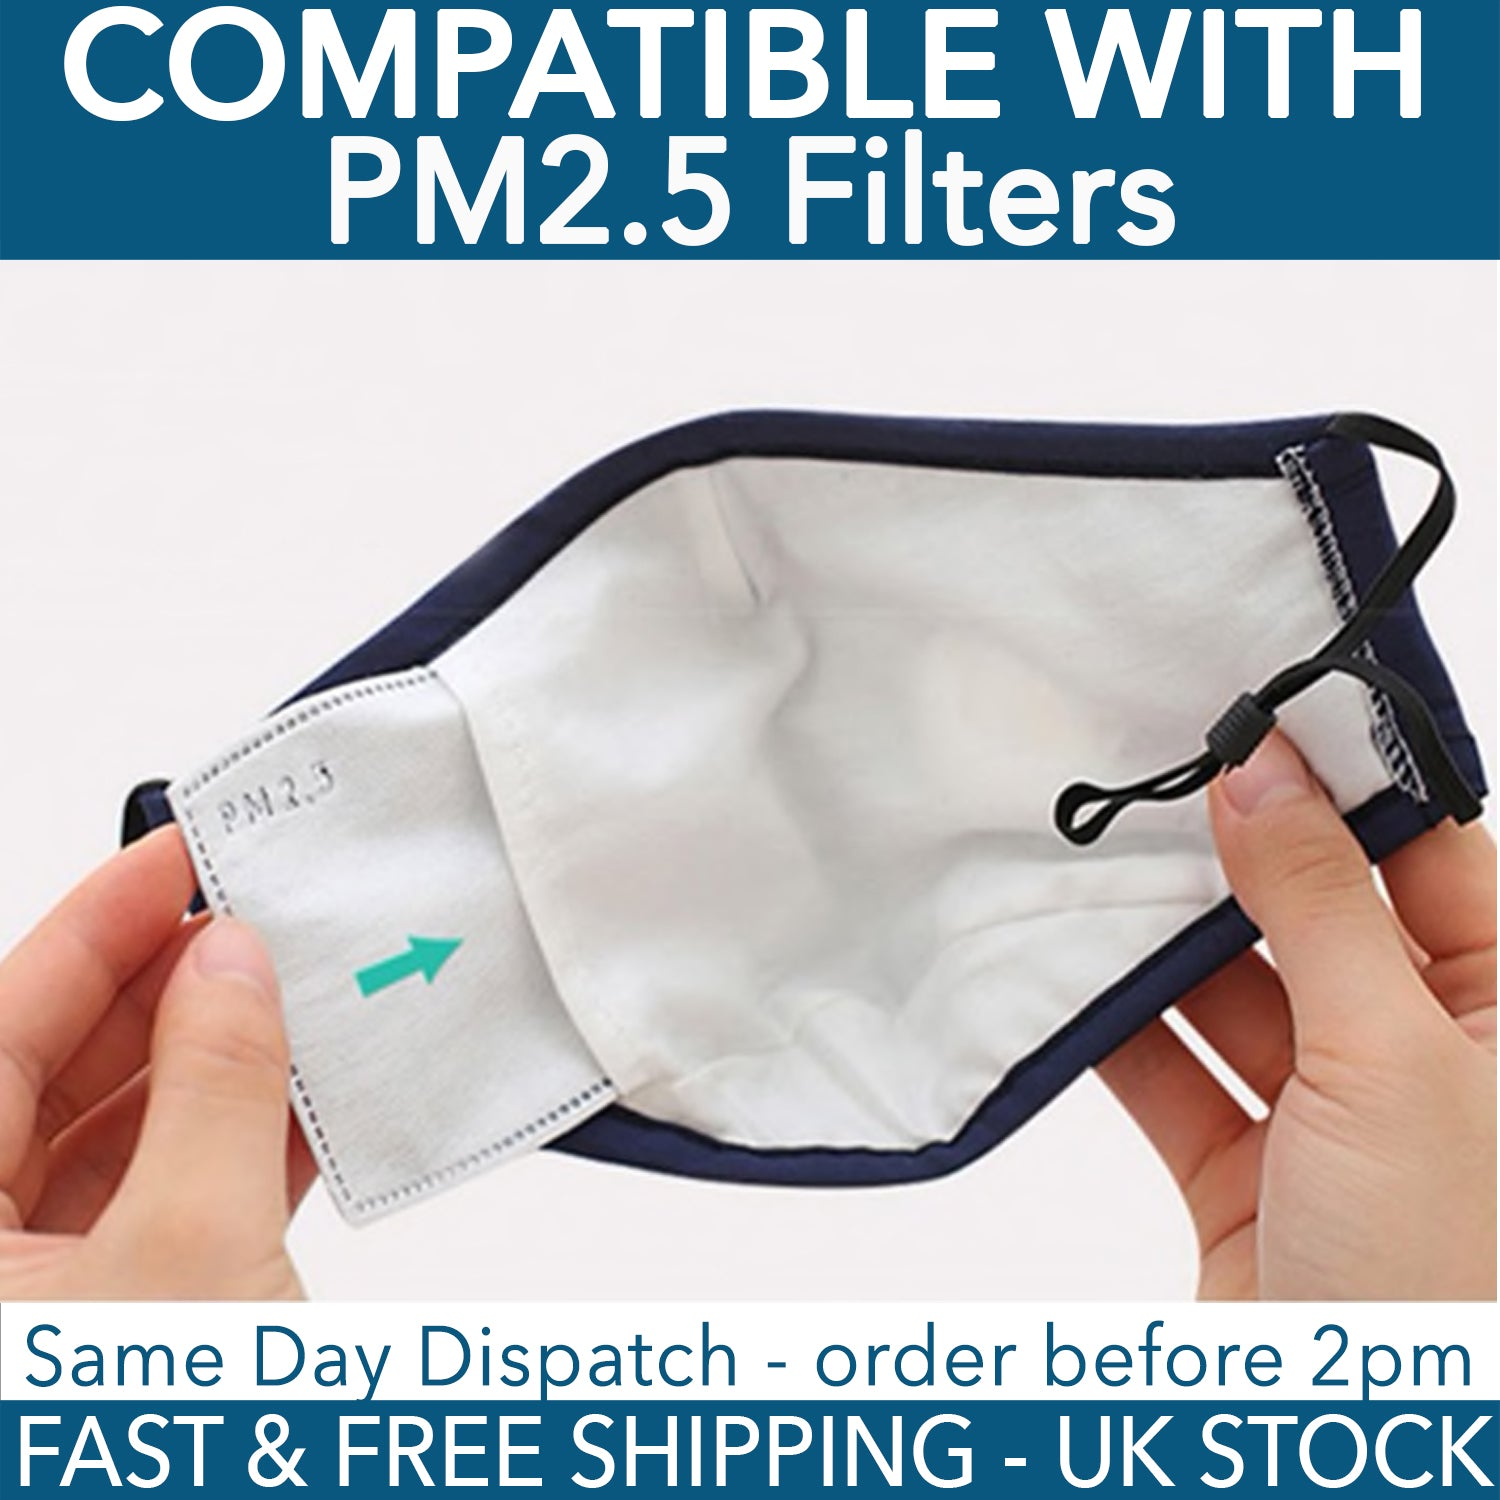 Face Mask Cover For Kids Compatible With Pm2 5 Filters Uk Stock Beauty Stationery